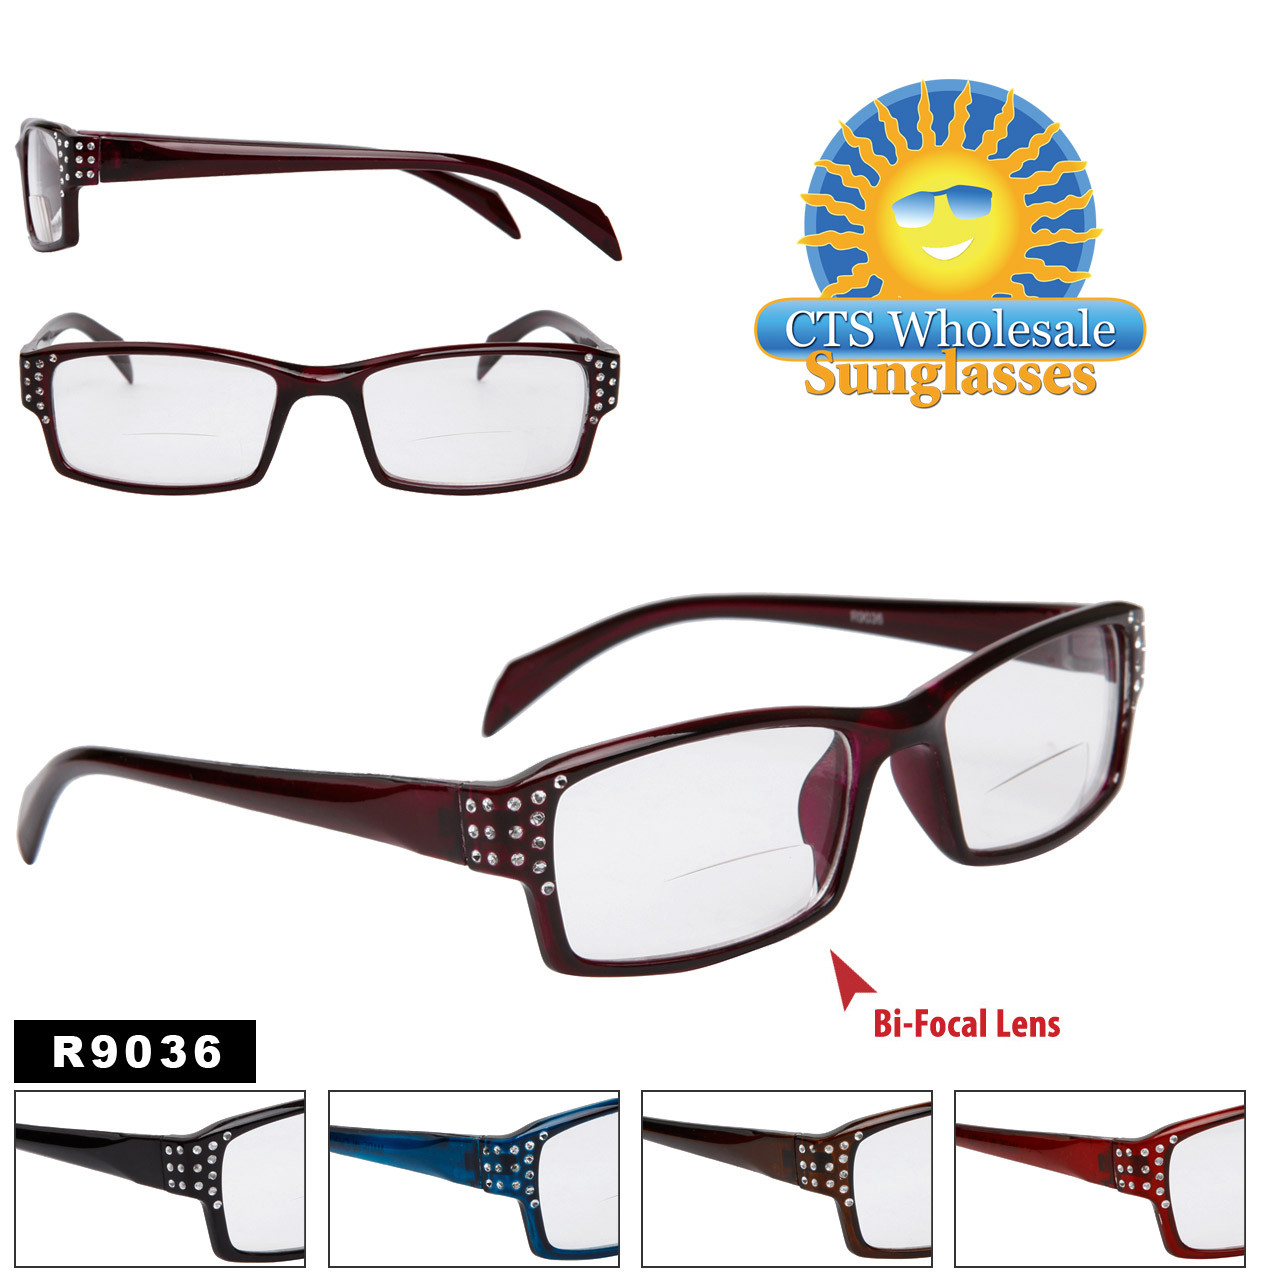 Bi-Focal Reading Glasses R9036